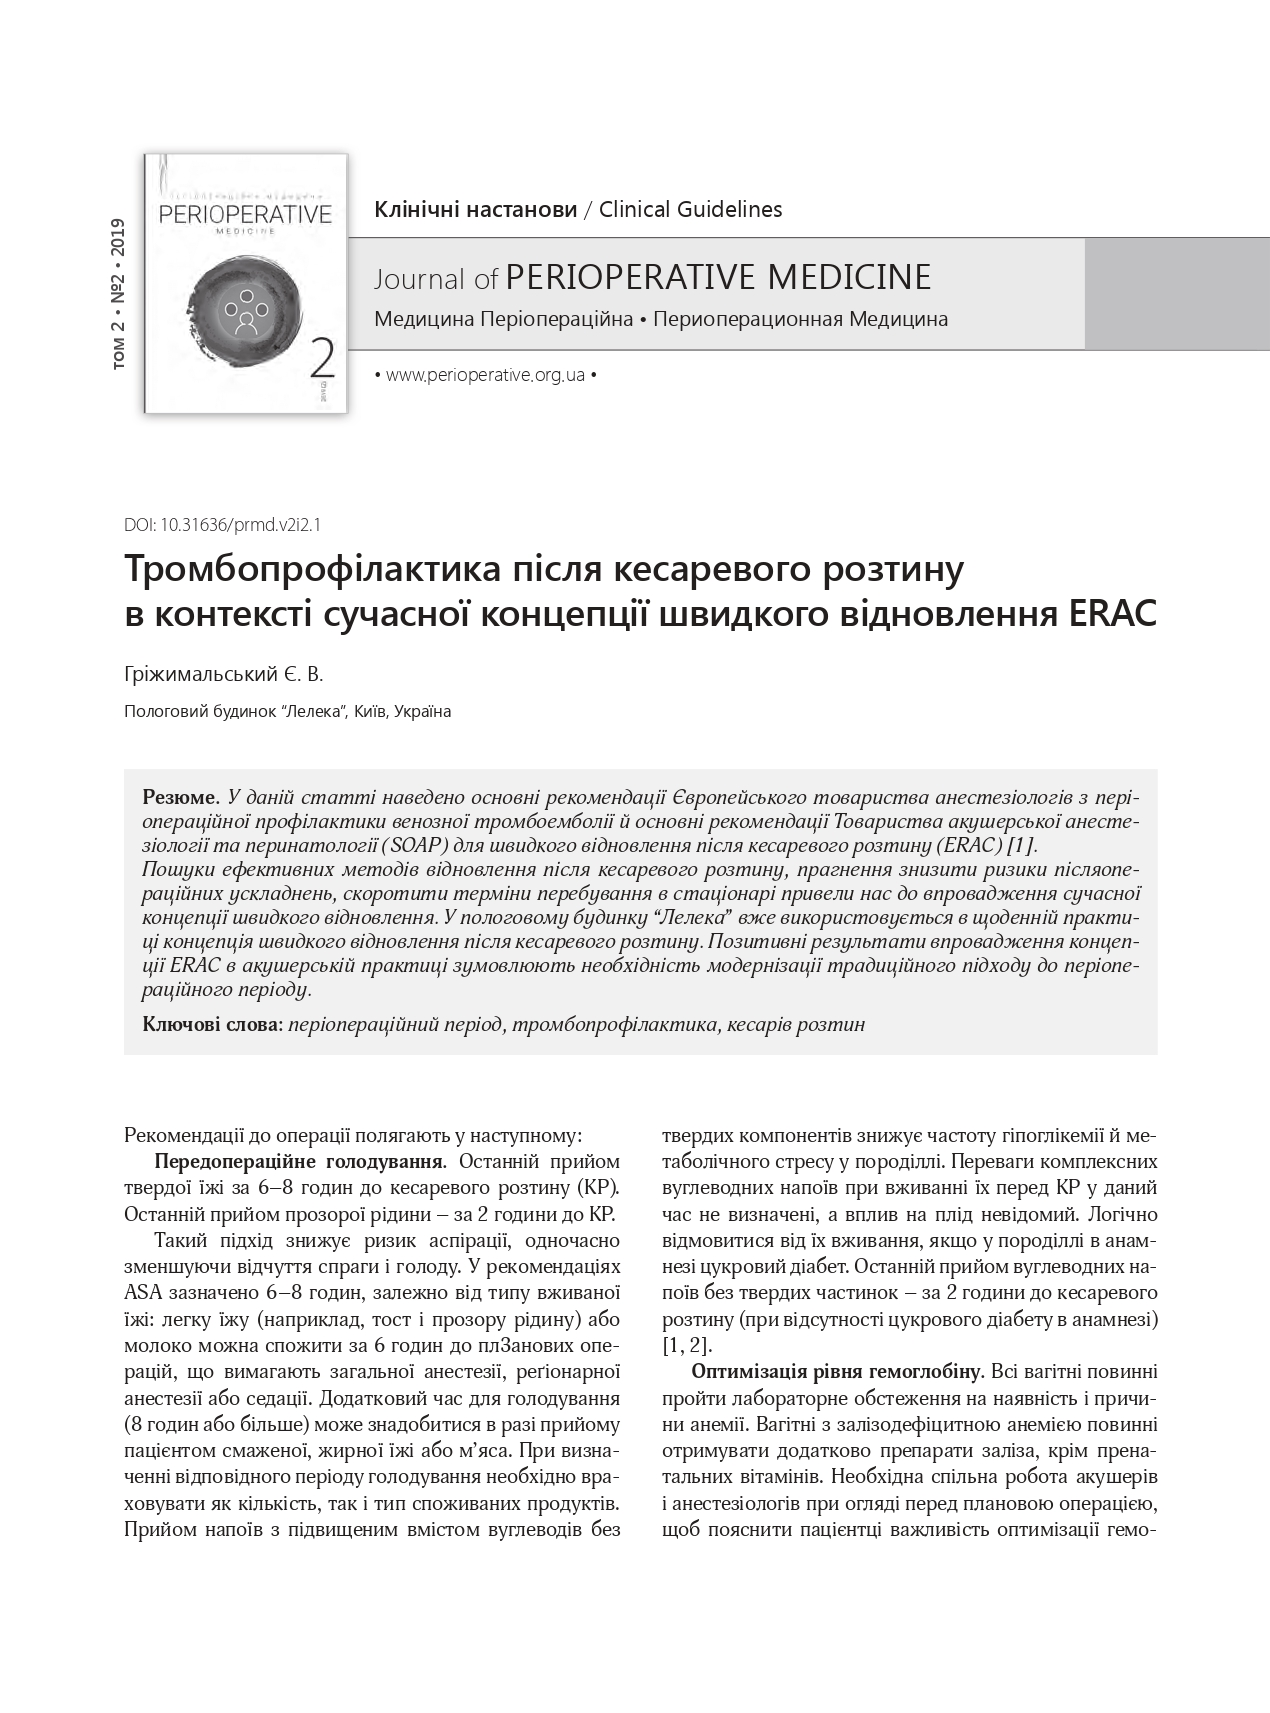 Cesarean section thromboprophylaxis in the context of the modern ERAC rapid recovery concept